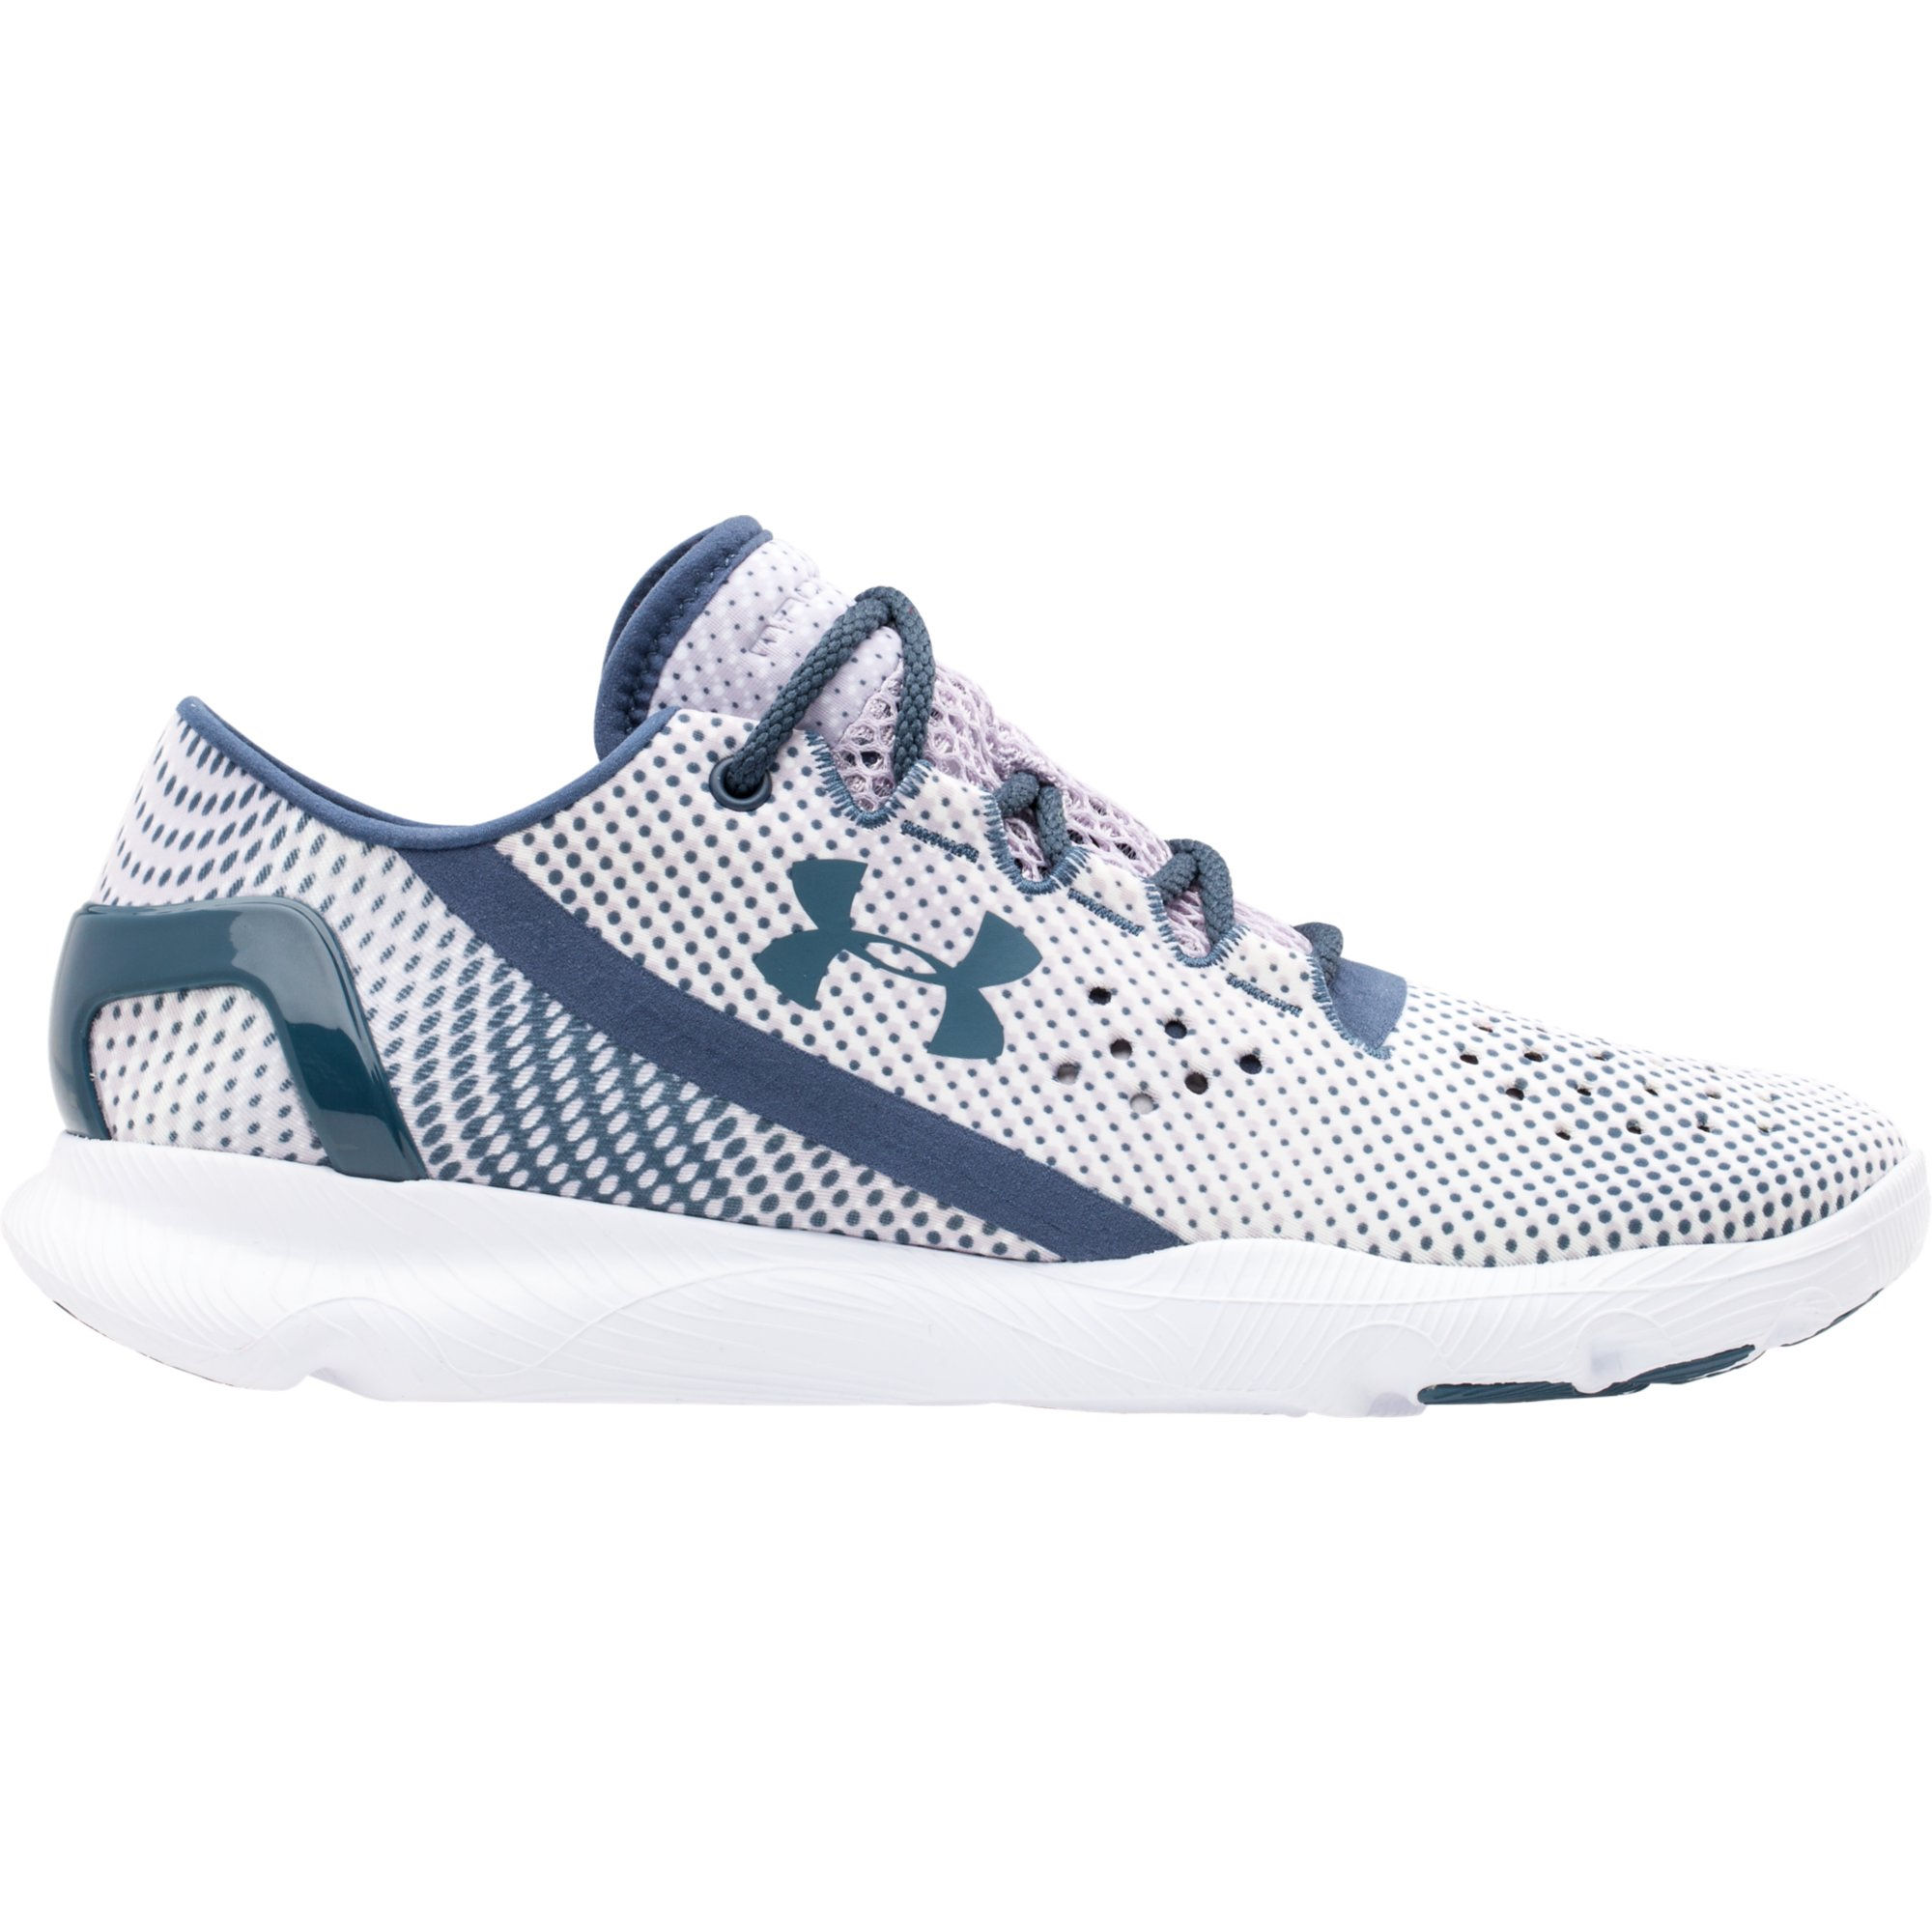 Zapatillas Under Armour SpeedForm Apollo Pixel para mujer (OI15) (gris)